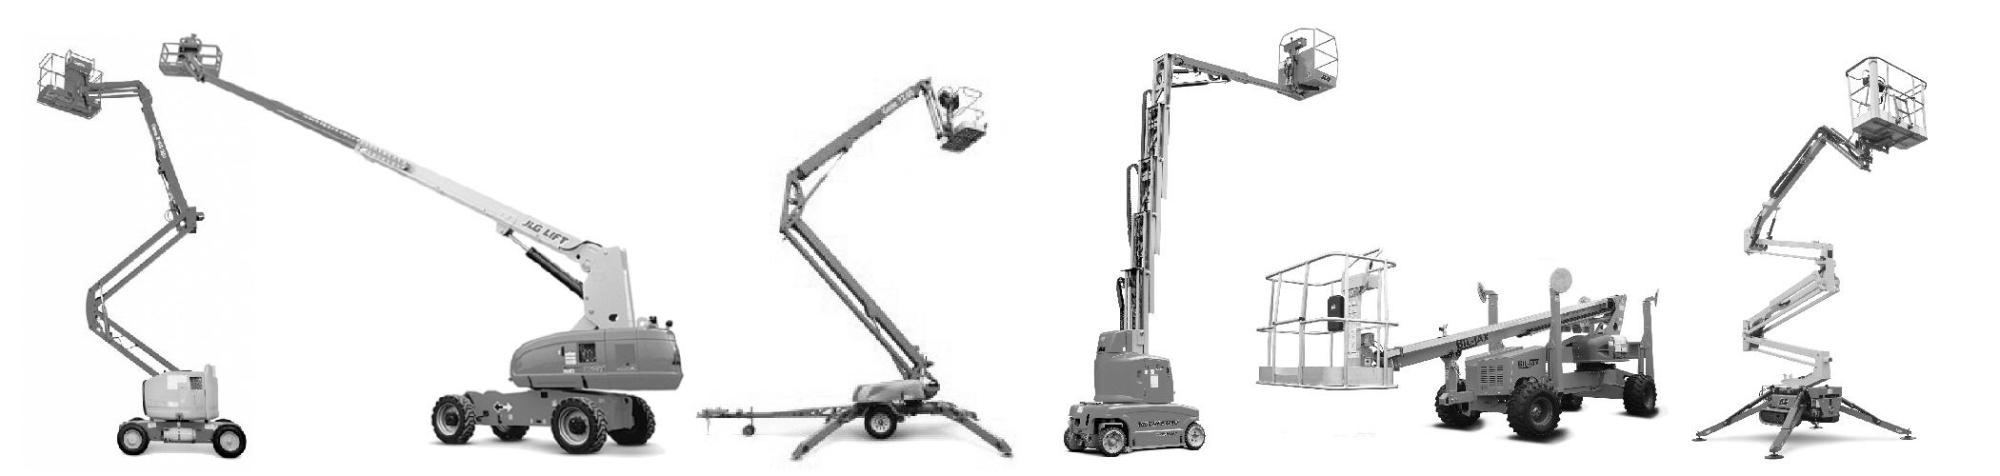 hight resolution of compare prices on aerial lifts in richfield wi